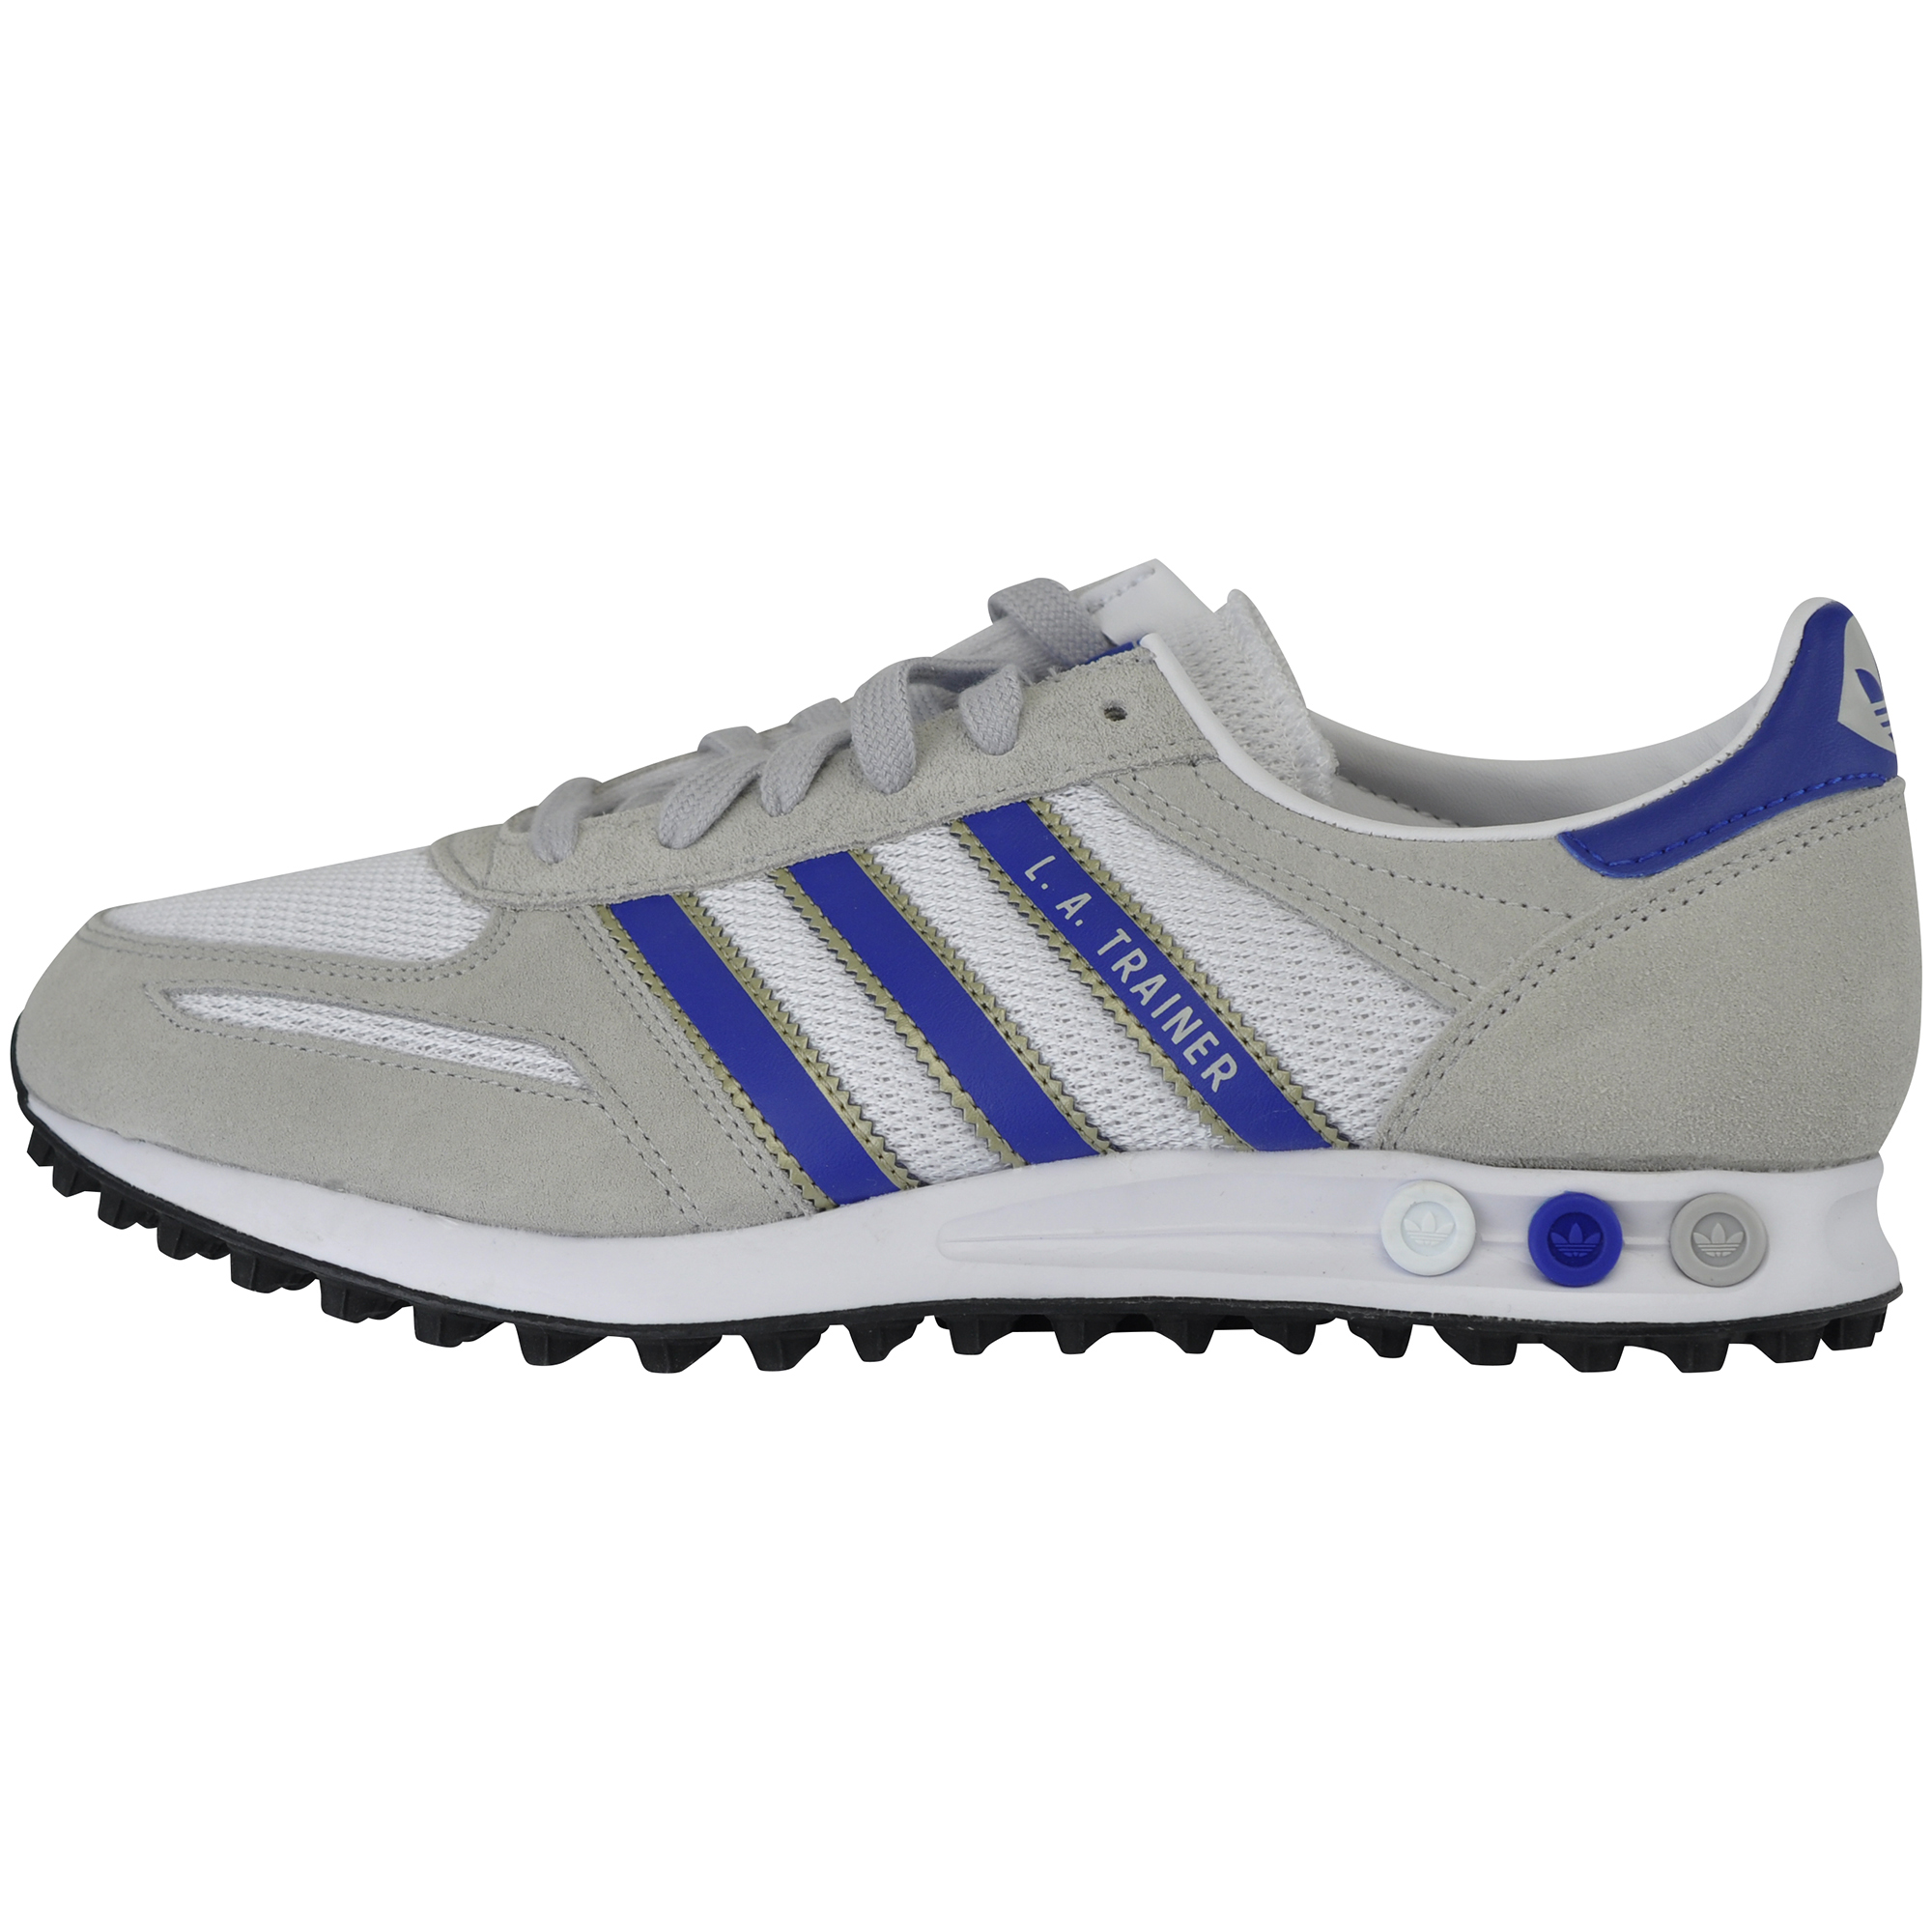 adidas la trainer zx 750 adi racer herren schuhe laufschuhe sneaker turnschuhe ebay. Black Bedroom Furniture Sets. Home Design Ideas